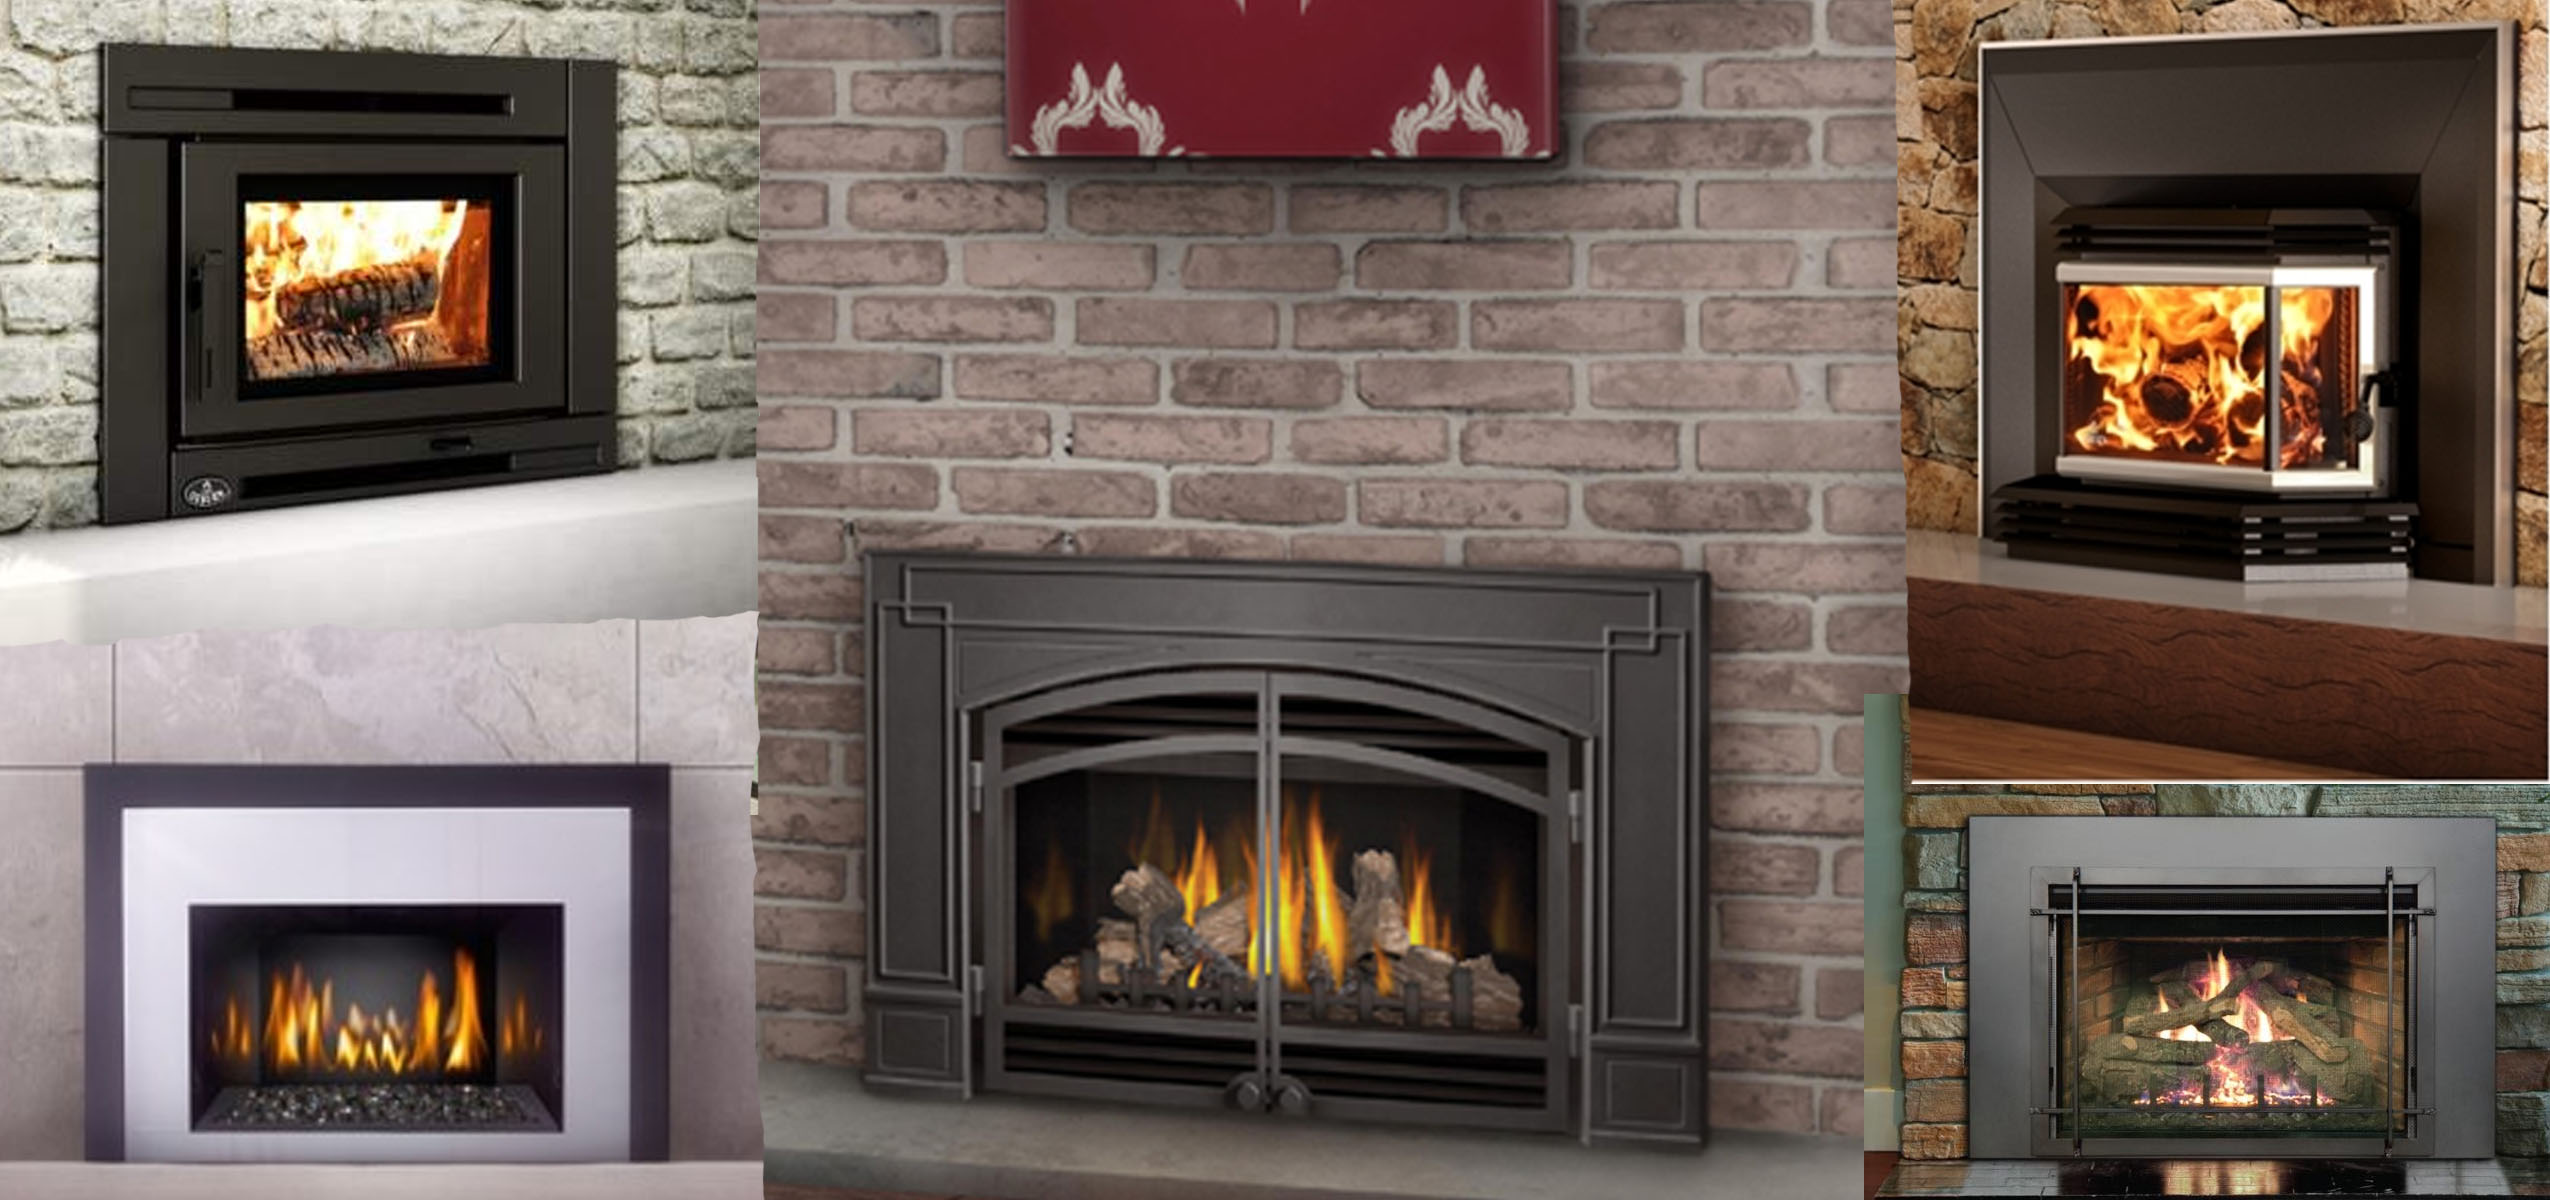 fireplaces fireplace inserts and stoves rh fireplaceinsert com fireplace wood for sale overland park ks fireplace wood for sale in ct